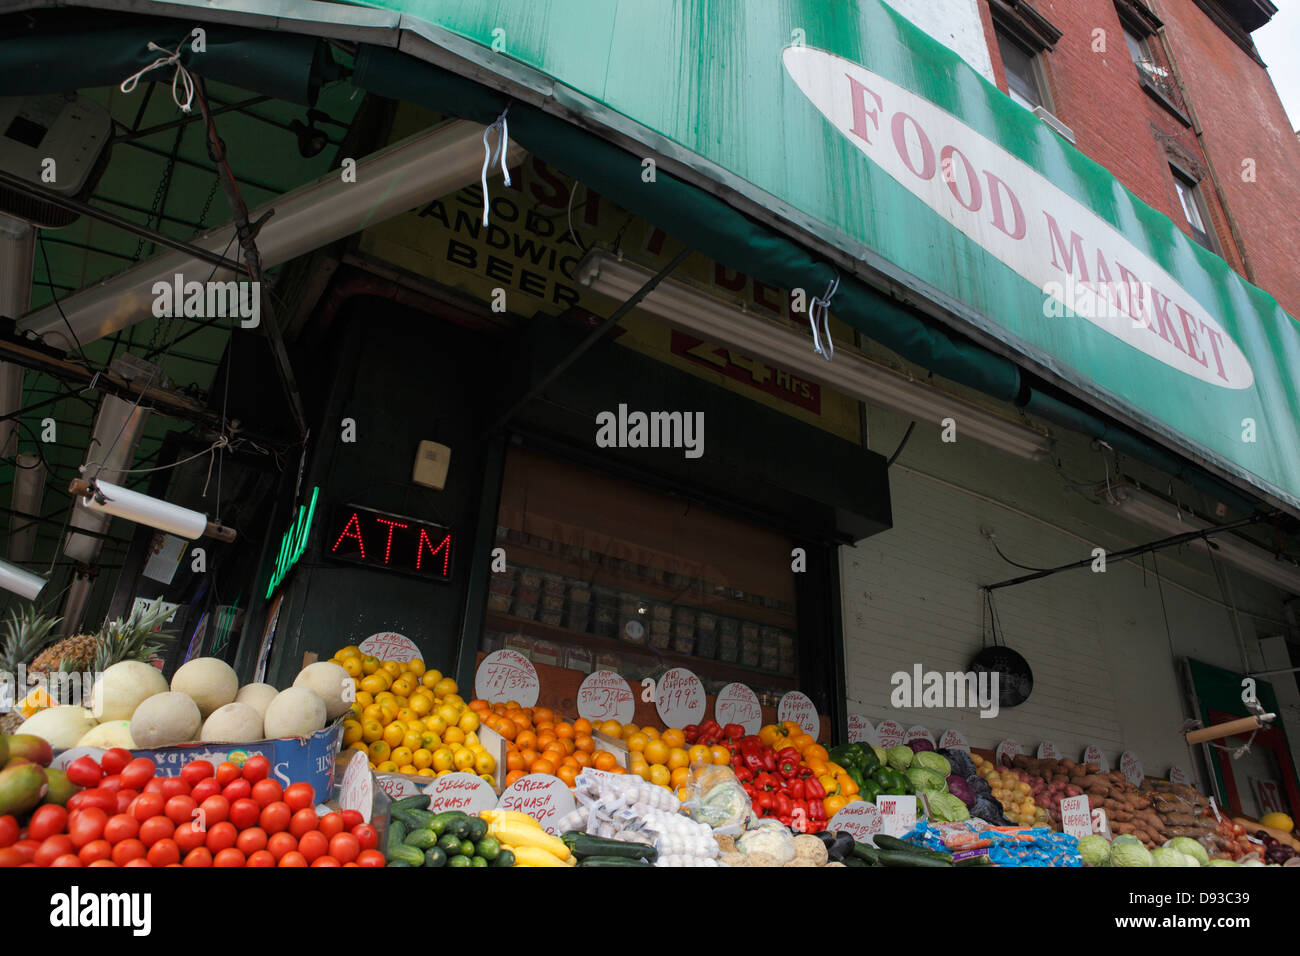 fresh produce on display at Food Market deli in New York City - Stock Image